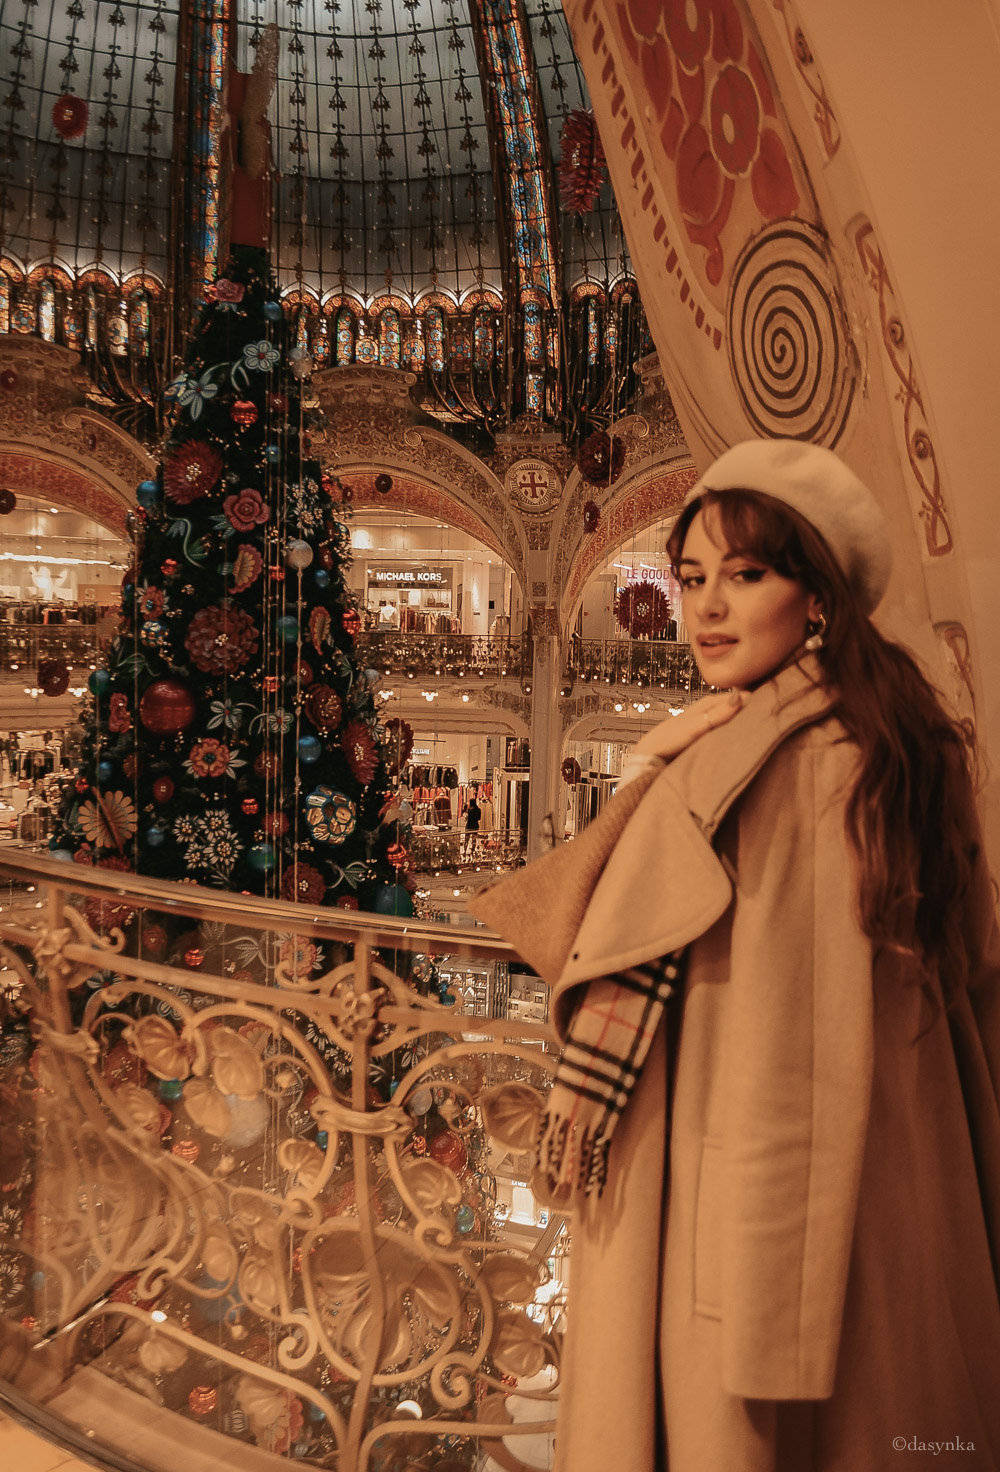 dasynka-fashion-blog-blogger-influencer-inspo-inspiration-shooting-model-globettrotter-travel-girl-lookbook-instagram-instagrammer-long-hair-street-style-casual-italy-lifestyle-outfit-poses-look-ootd-ideas-elegant-italian-paris-coat-camel-burberry-hat-basque-browne-boots-black-shirt-bow-sweater-cozy-parisien-parisienne-parisian-neutral-beige-white-scarf-france-tour-eiffel-lafayette-christmas-tree